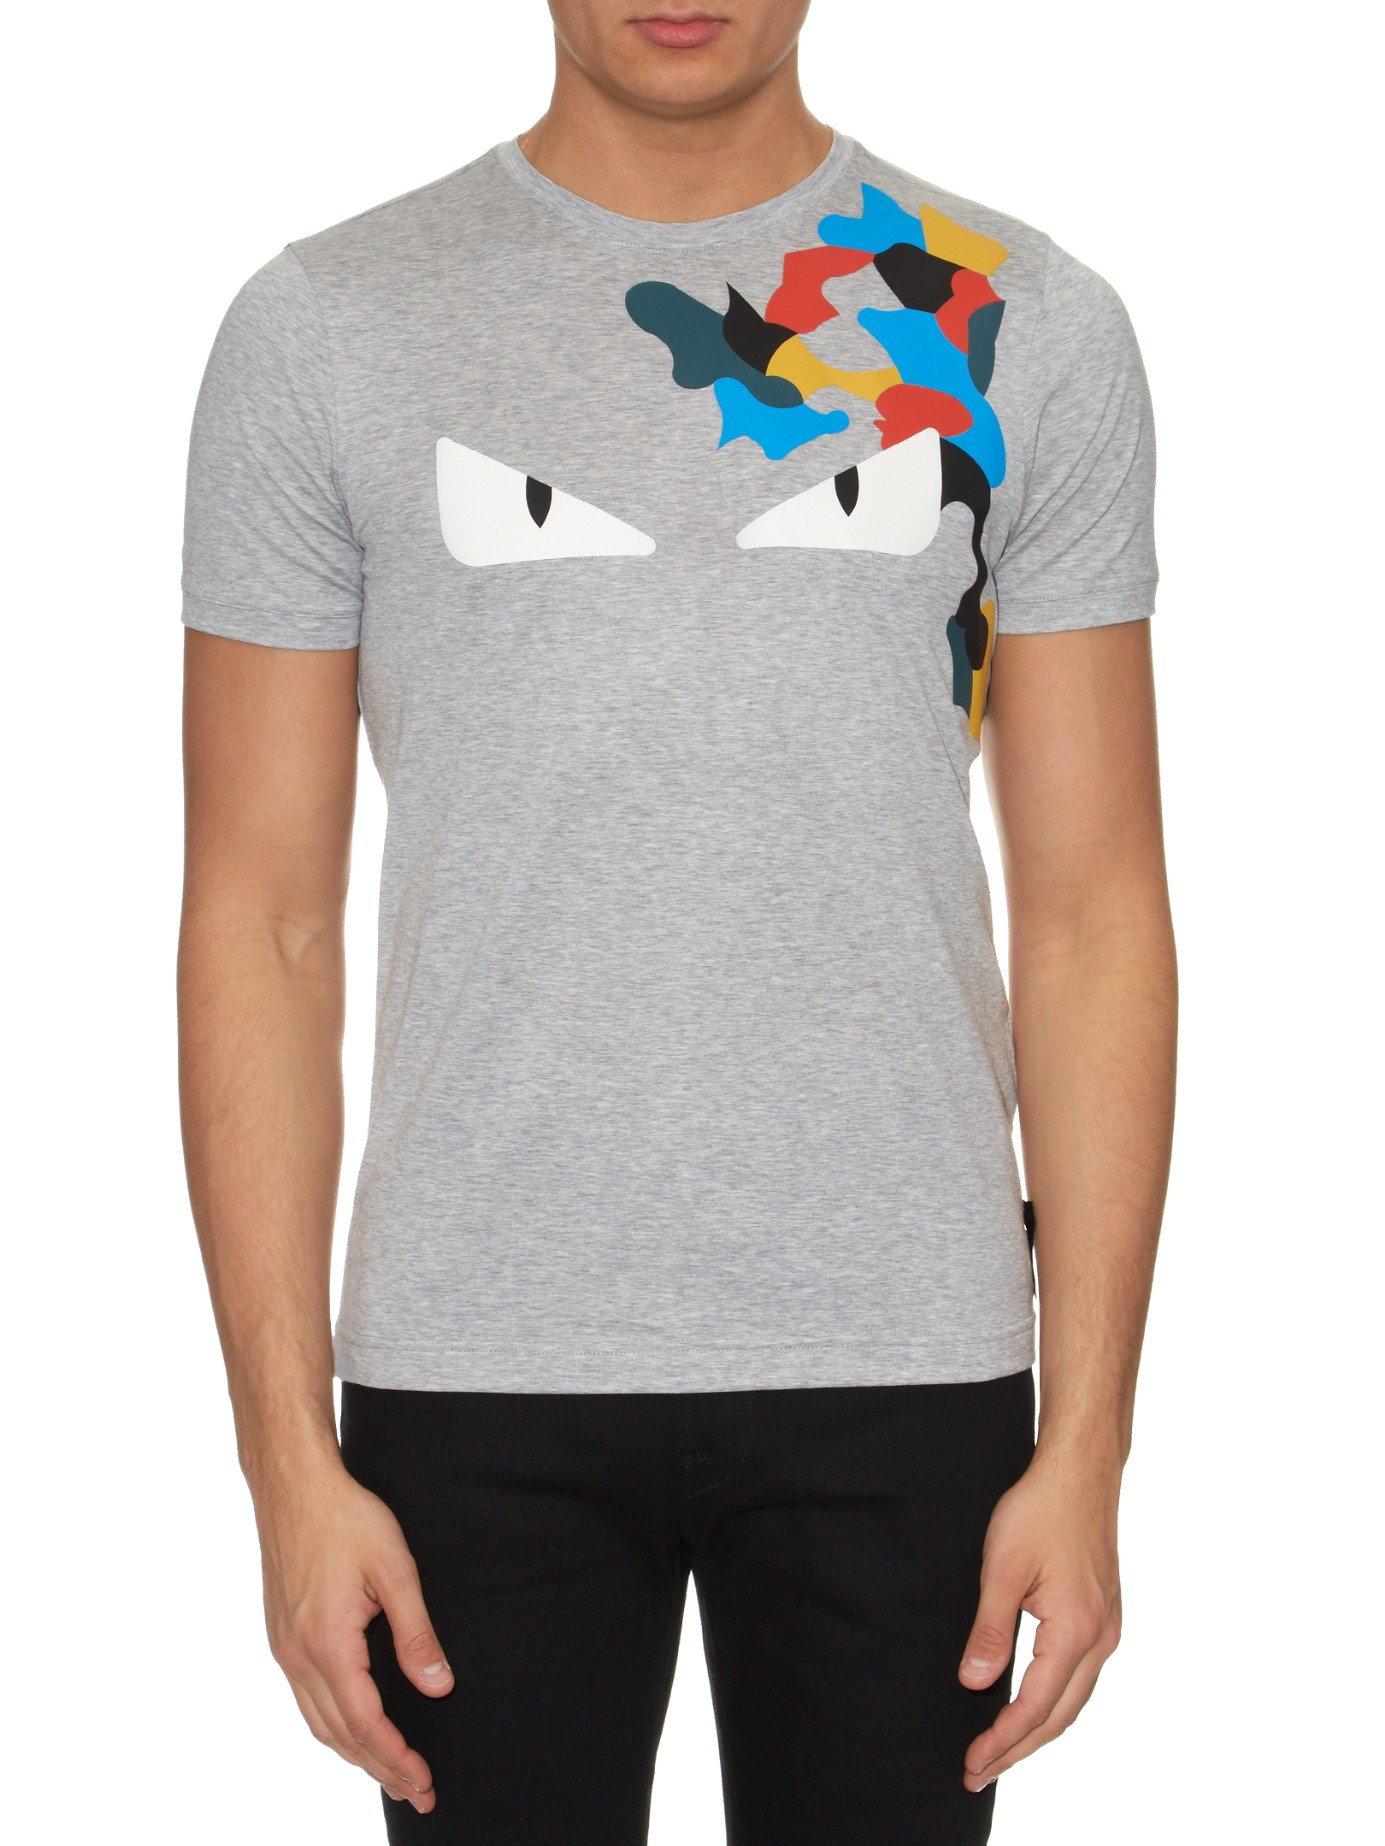 a017a2ebc72 canada lyst fendi bag bugs and flecked print t shirt in gray for men 4c949  61050